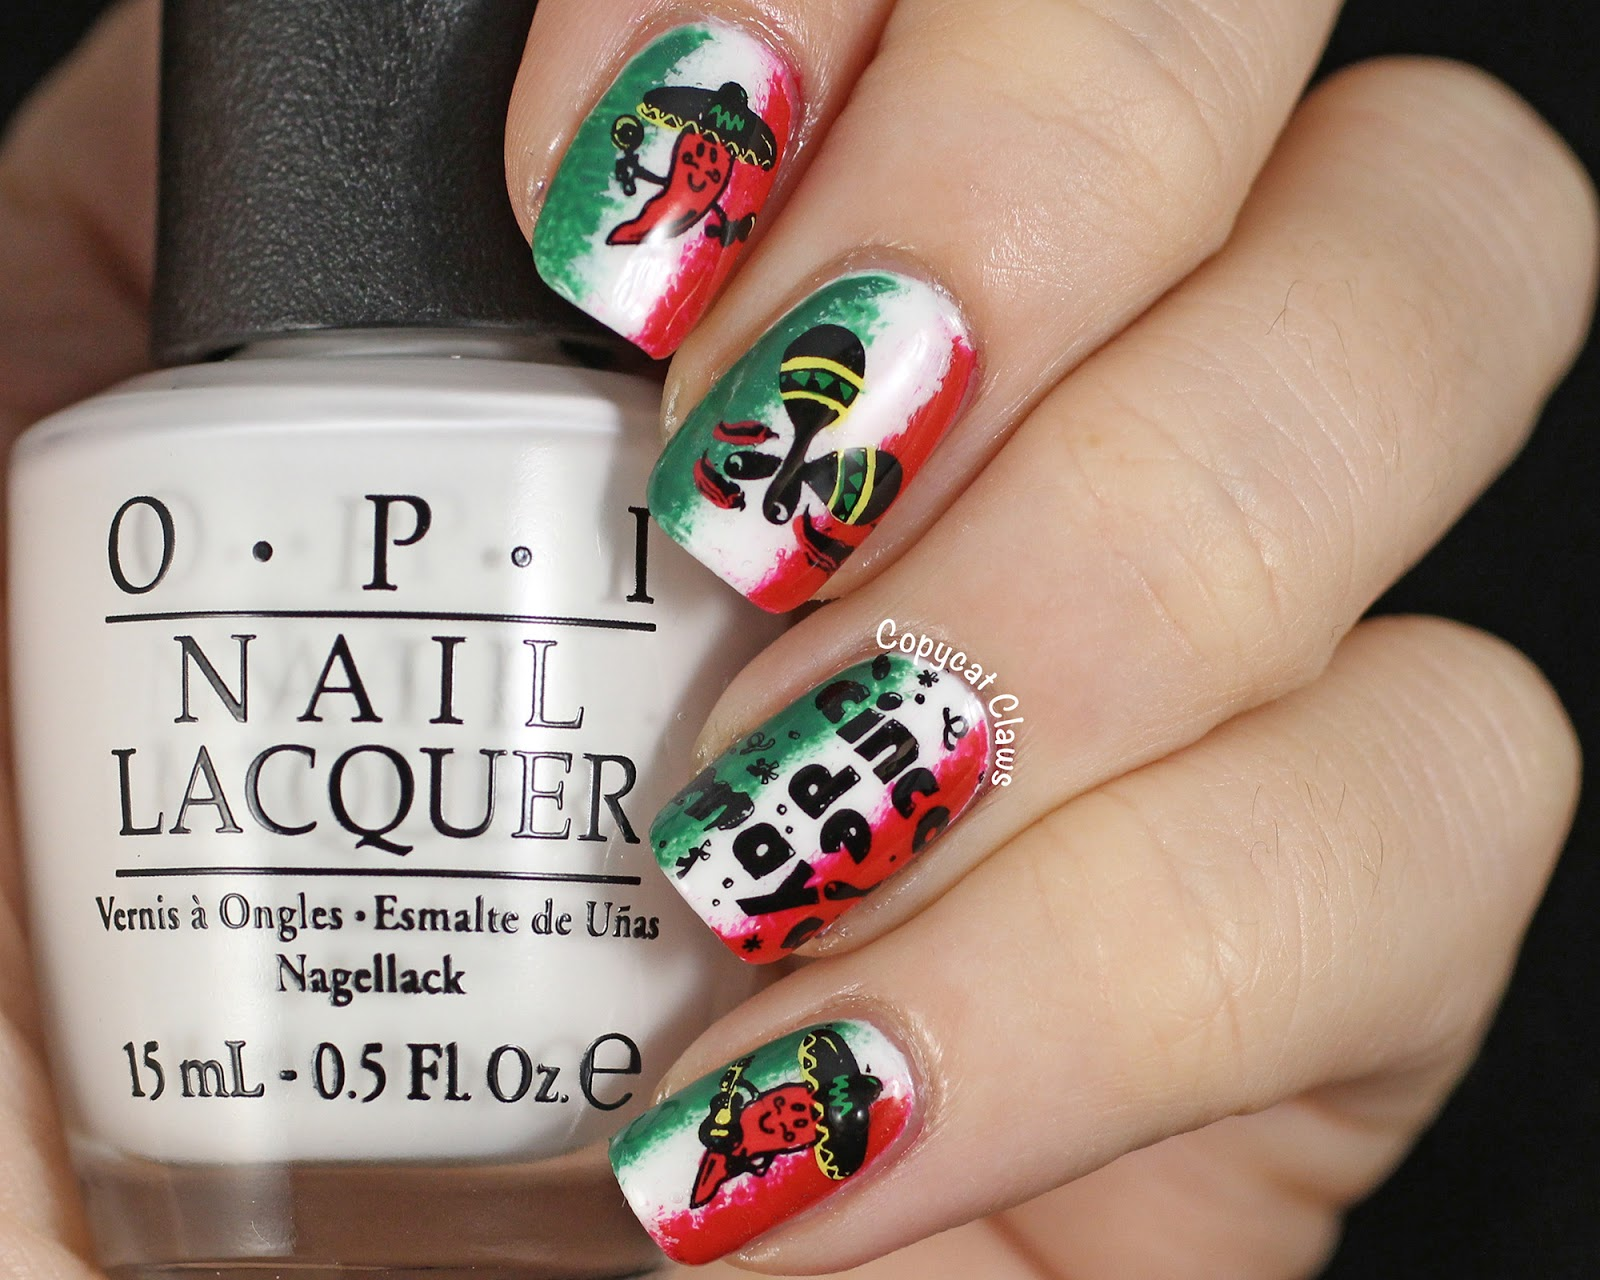 I Then Sponged On A Bit Of Red China Glaze With Love And Green Opi Jade Is The New Black To Represent Mexico Flag